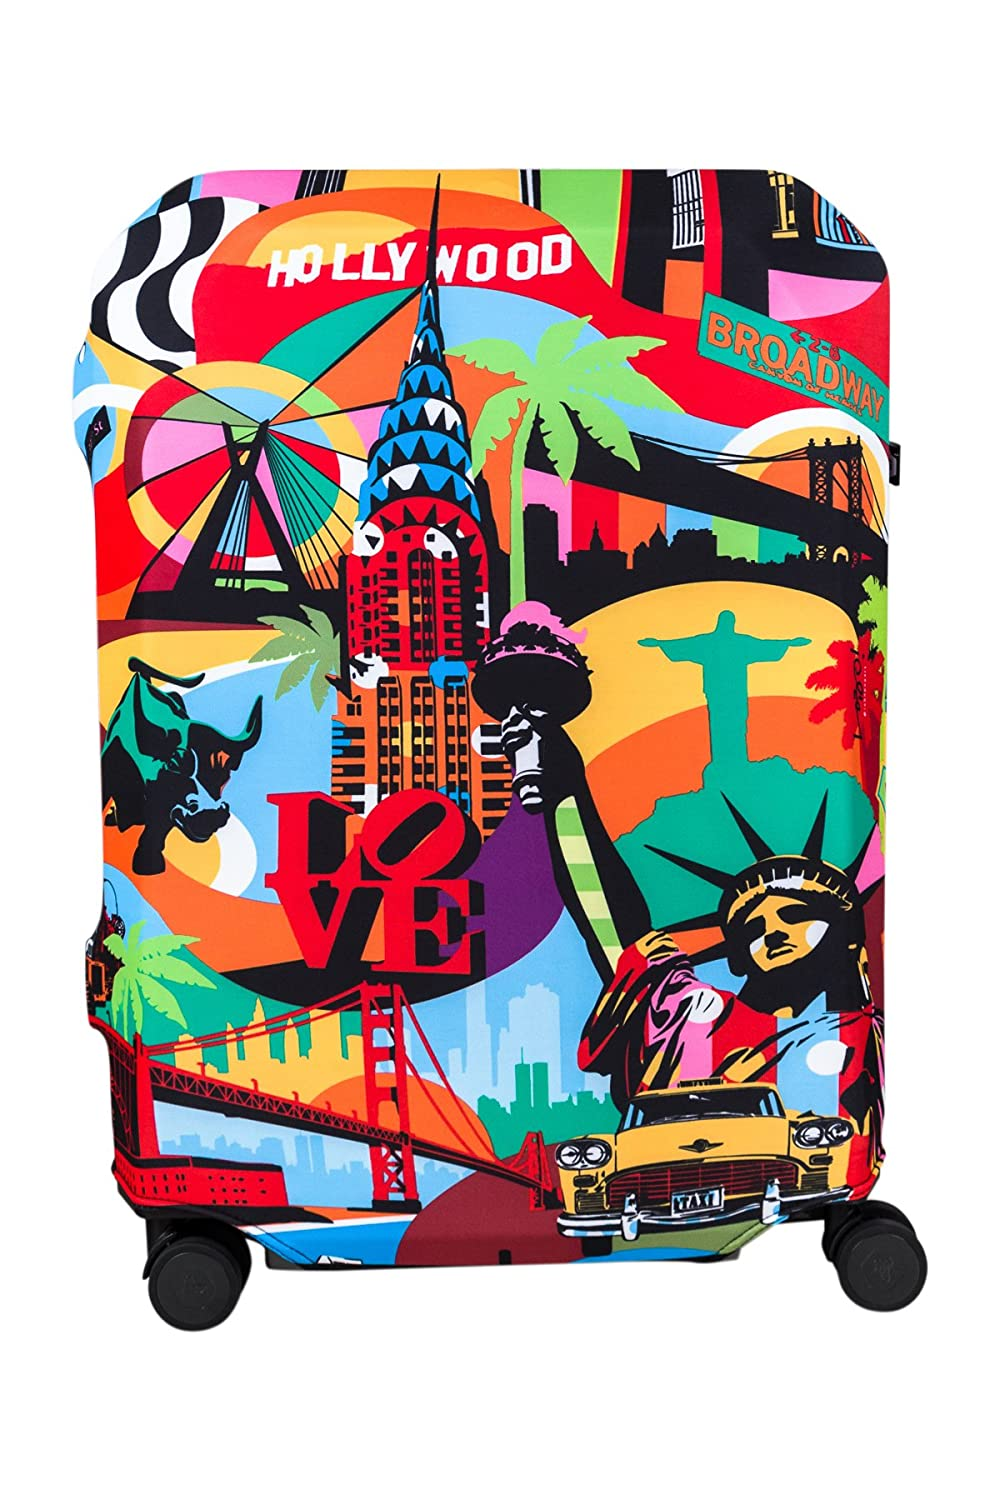 BG Berlin Stretchable Luggage Cover, Suitcase Hug, Water Resistant, Size Large, The American Way Print Fashion Imports BG2.2.136.L